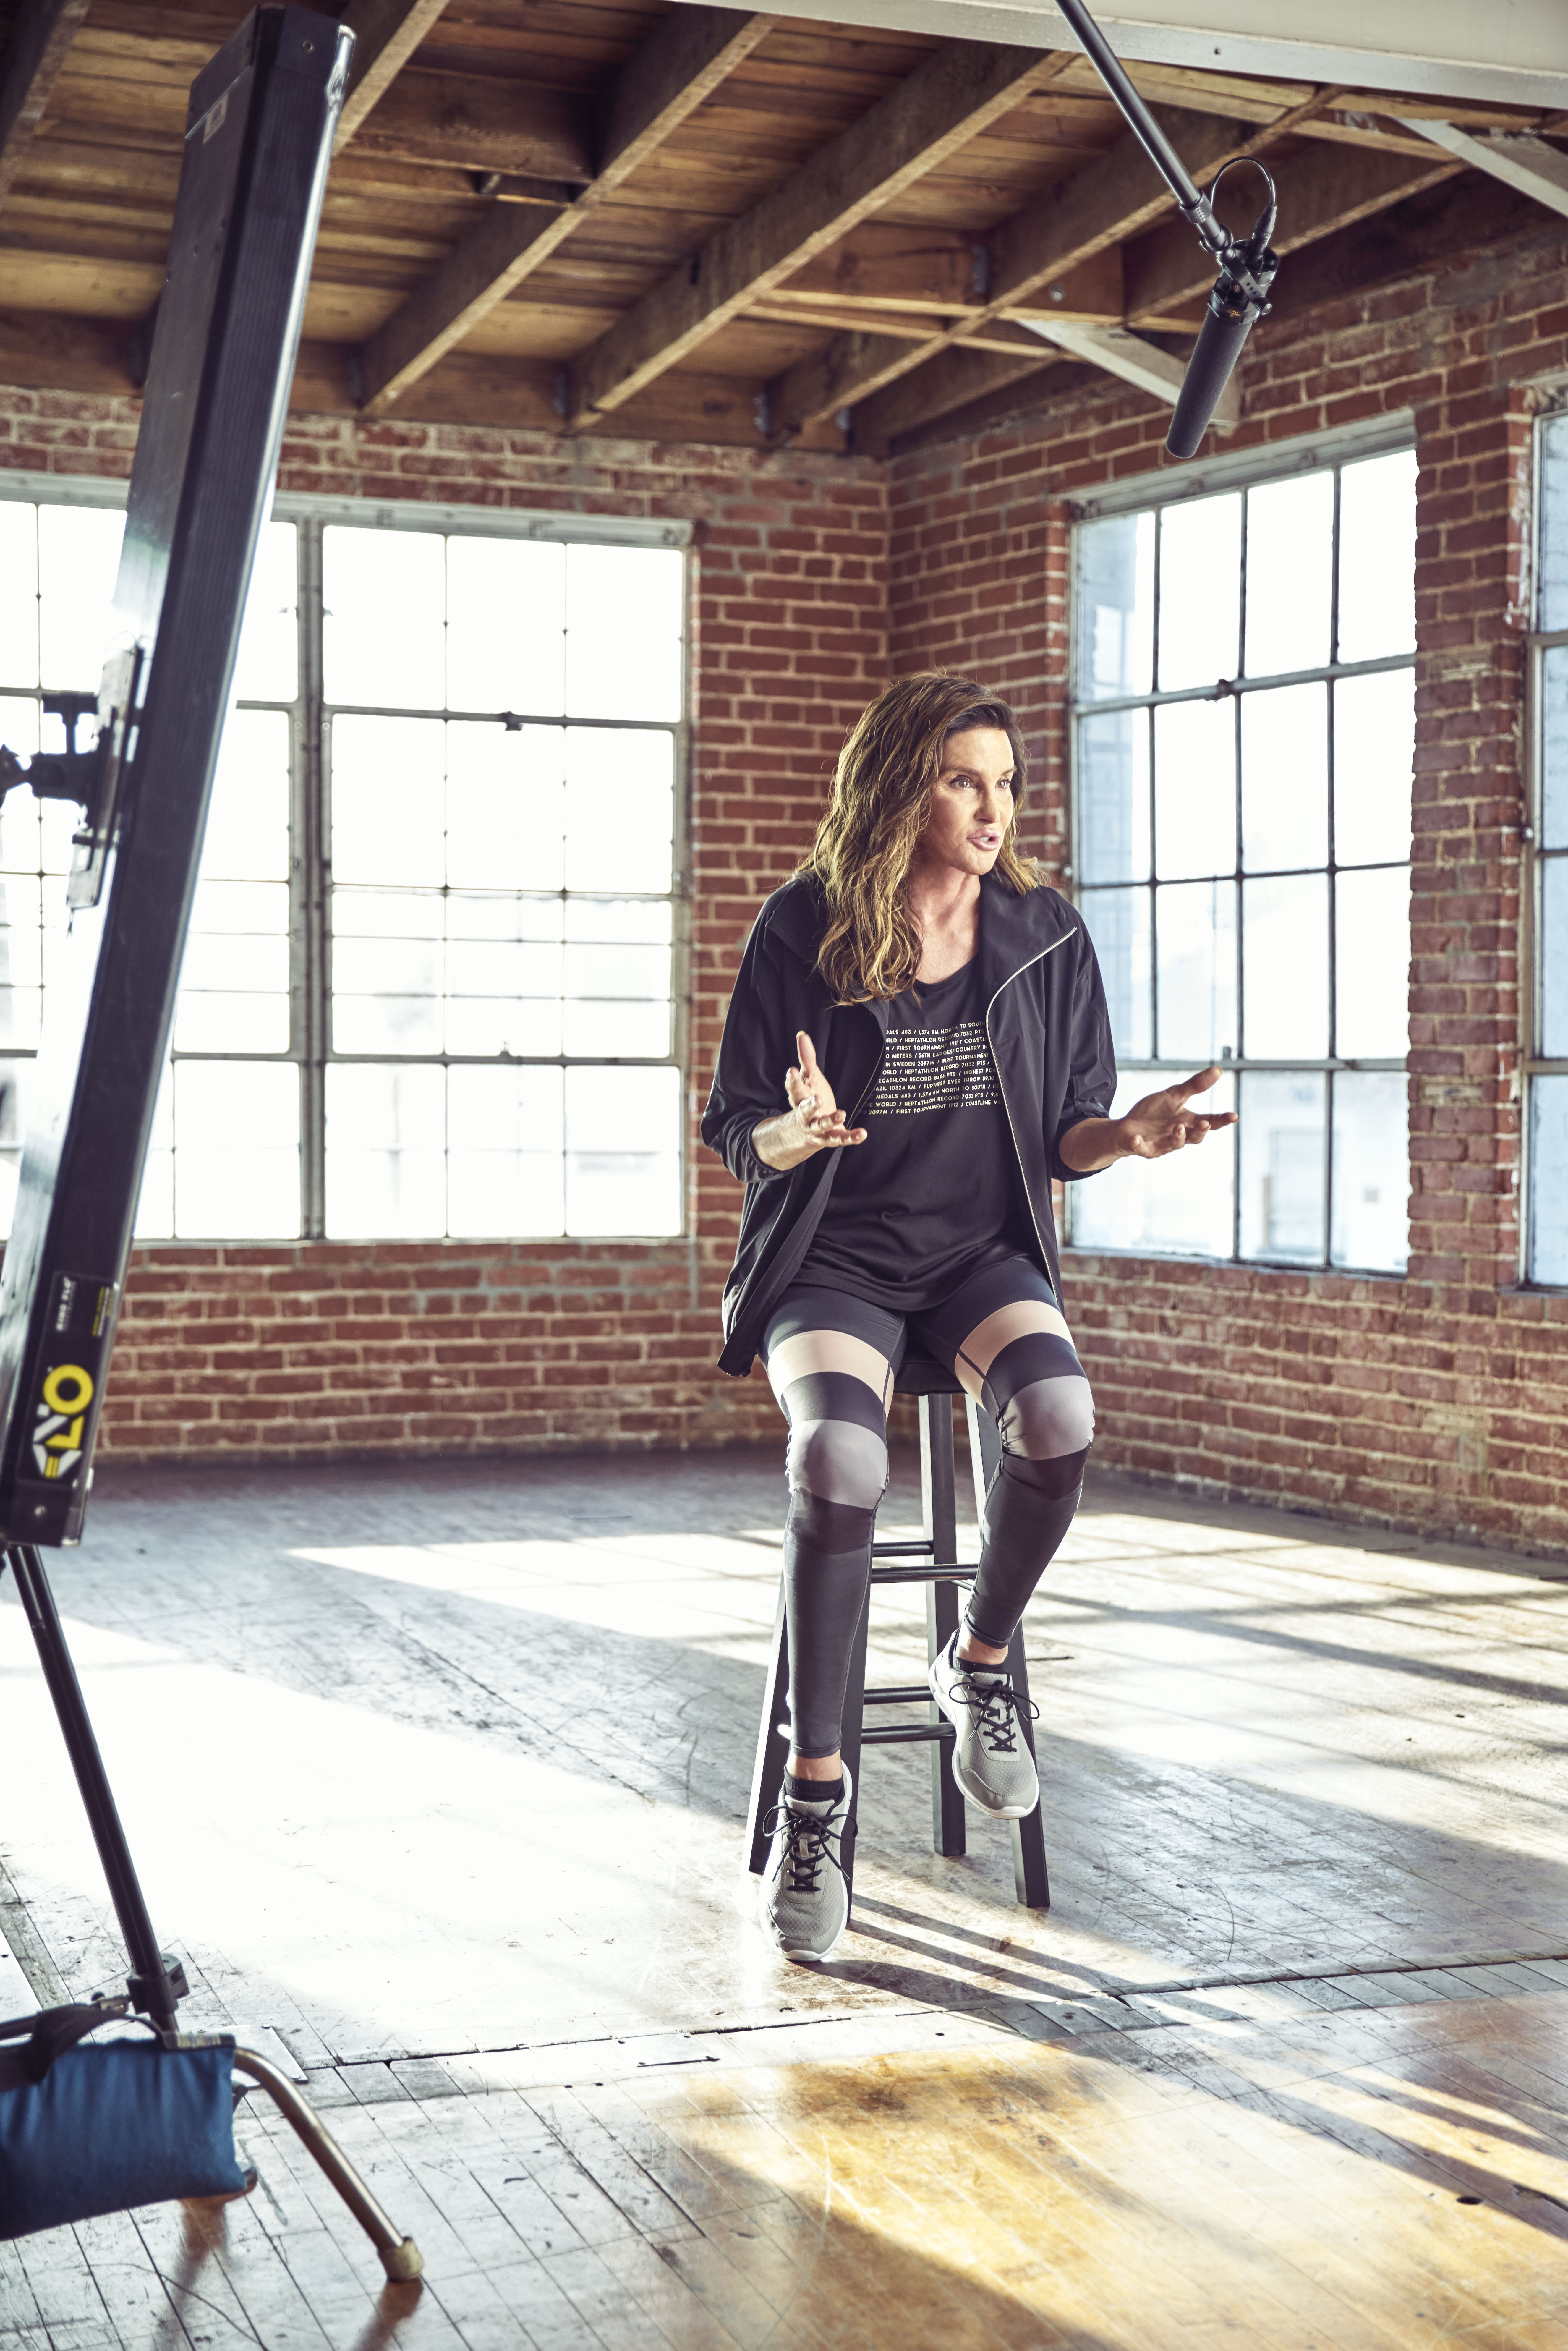 Caitlyn Jenner in H&M's For Every Victory campaign